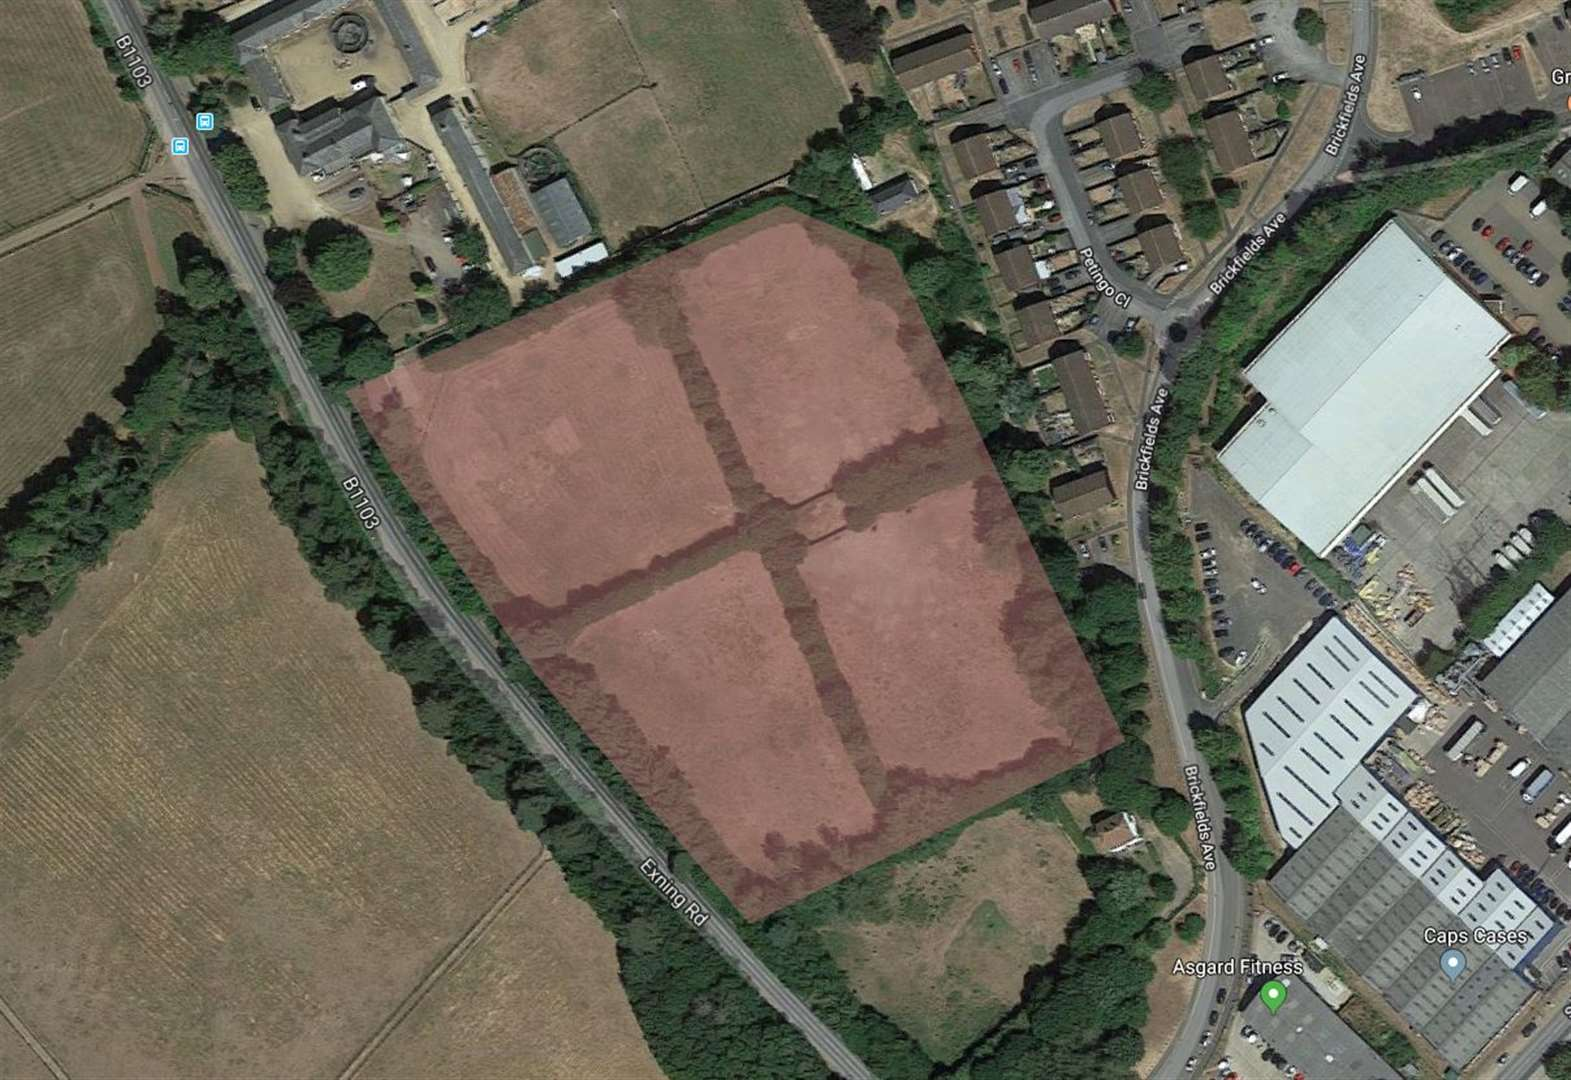 Brickfield Stud estate in Newmarket's Exning Road given go-ahead by council